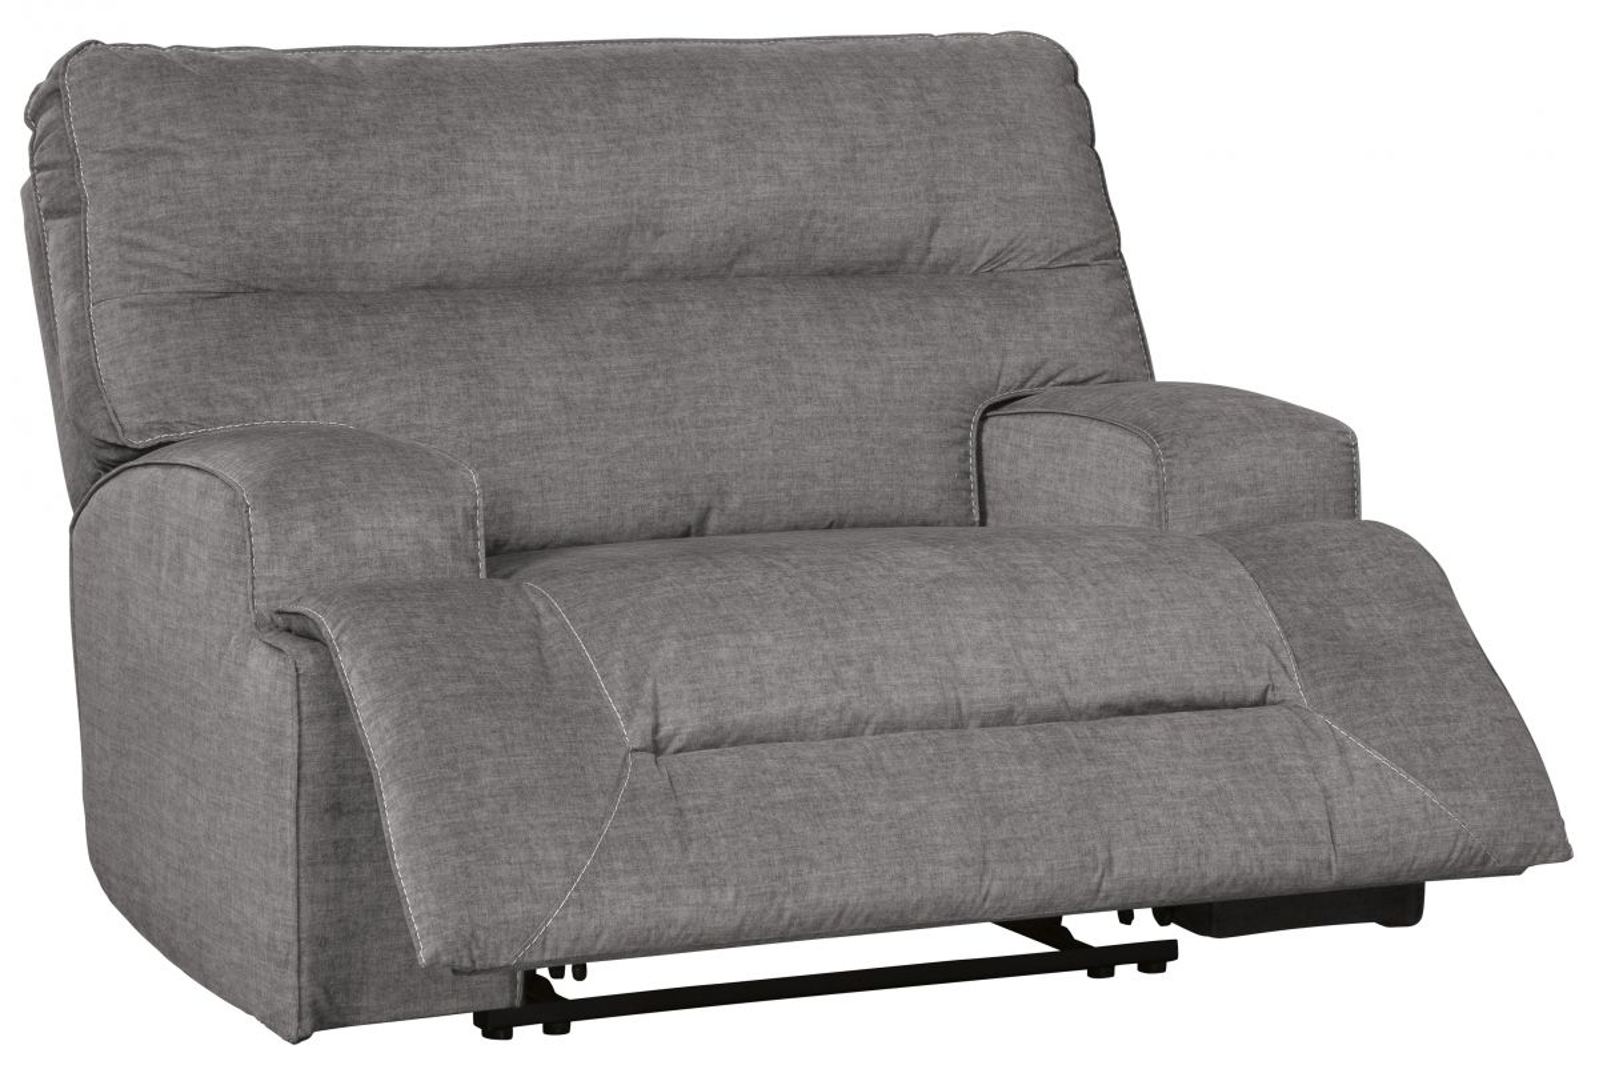 Picture of Coombs Recliner